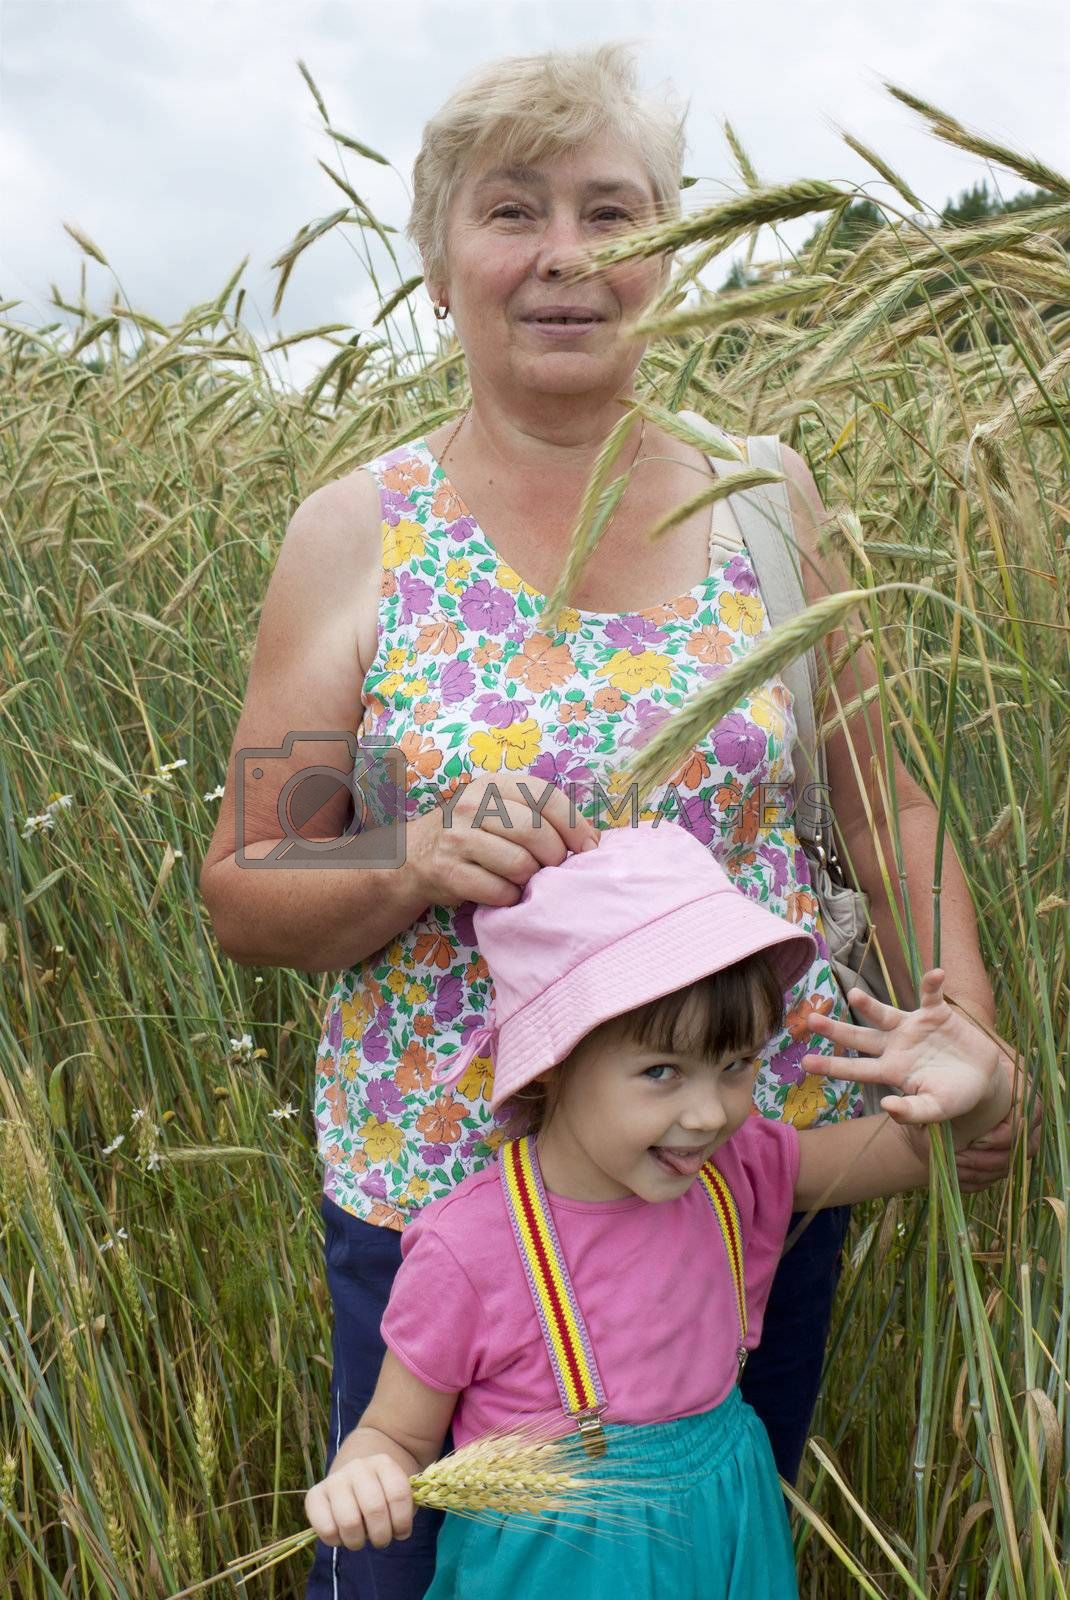 The grandmother with the grand daughter on a rye field